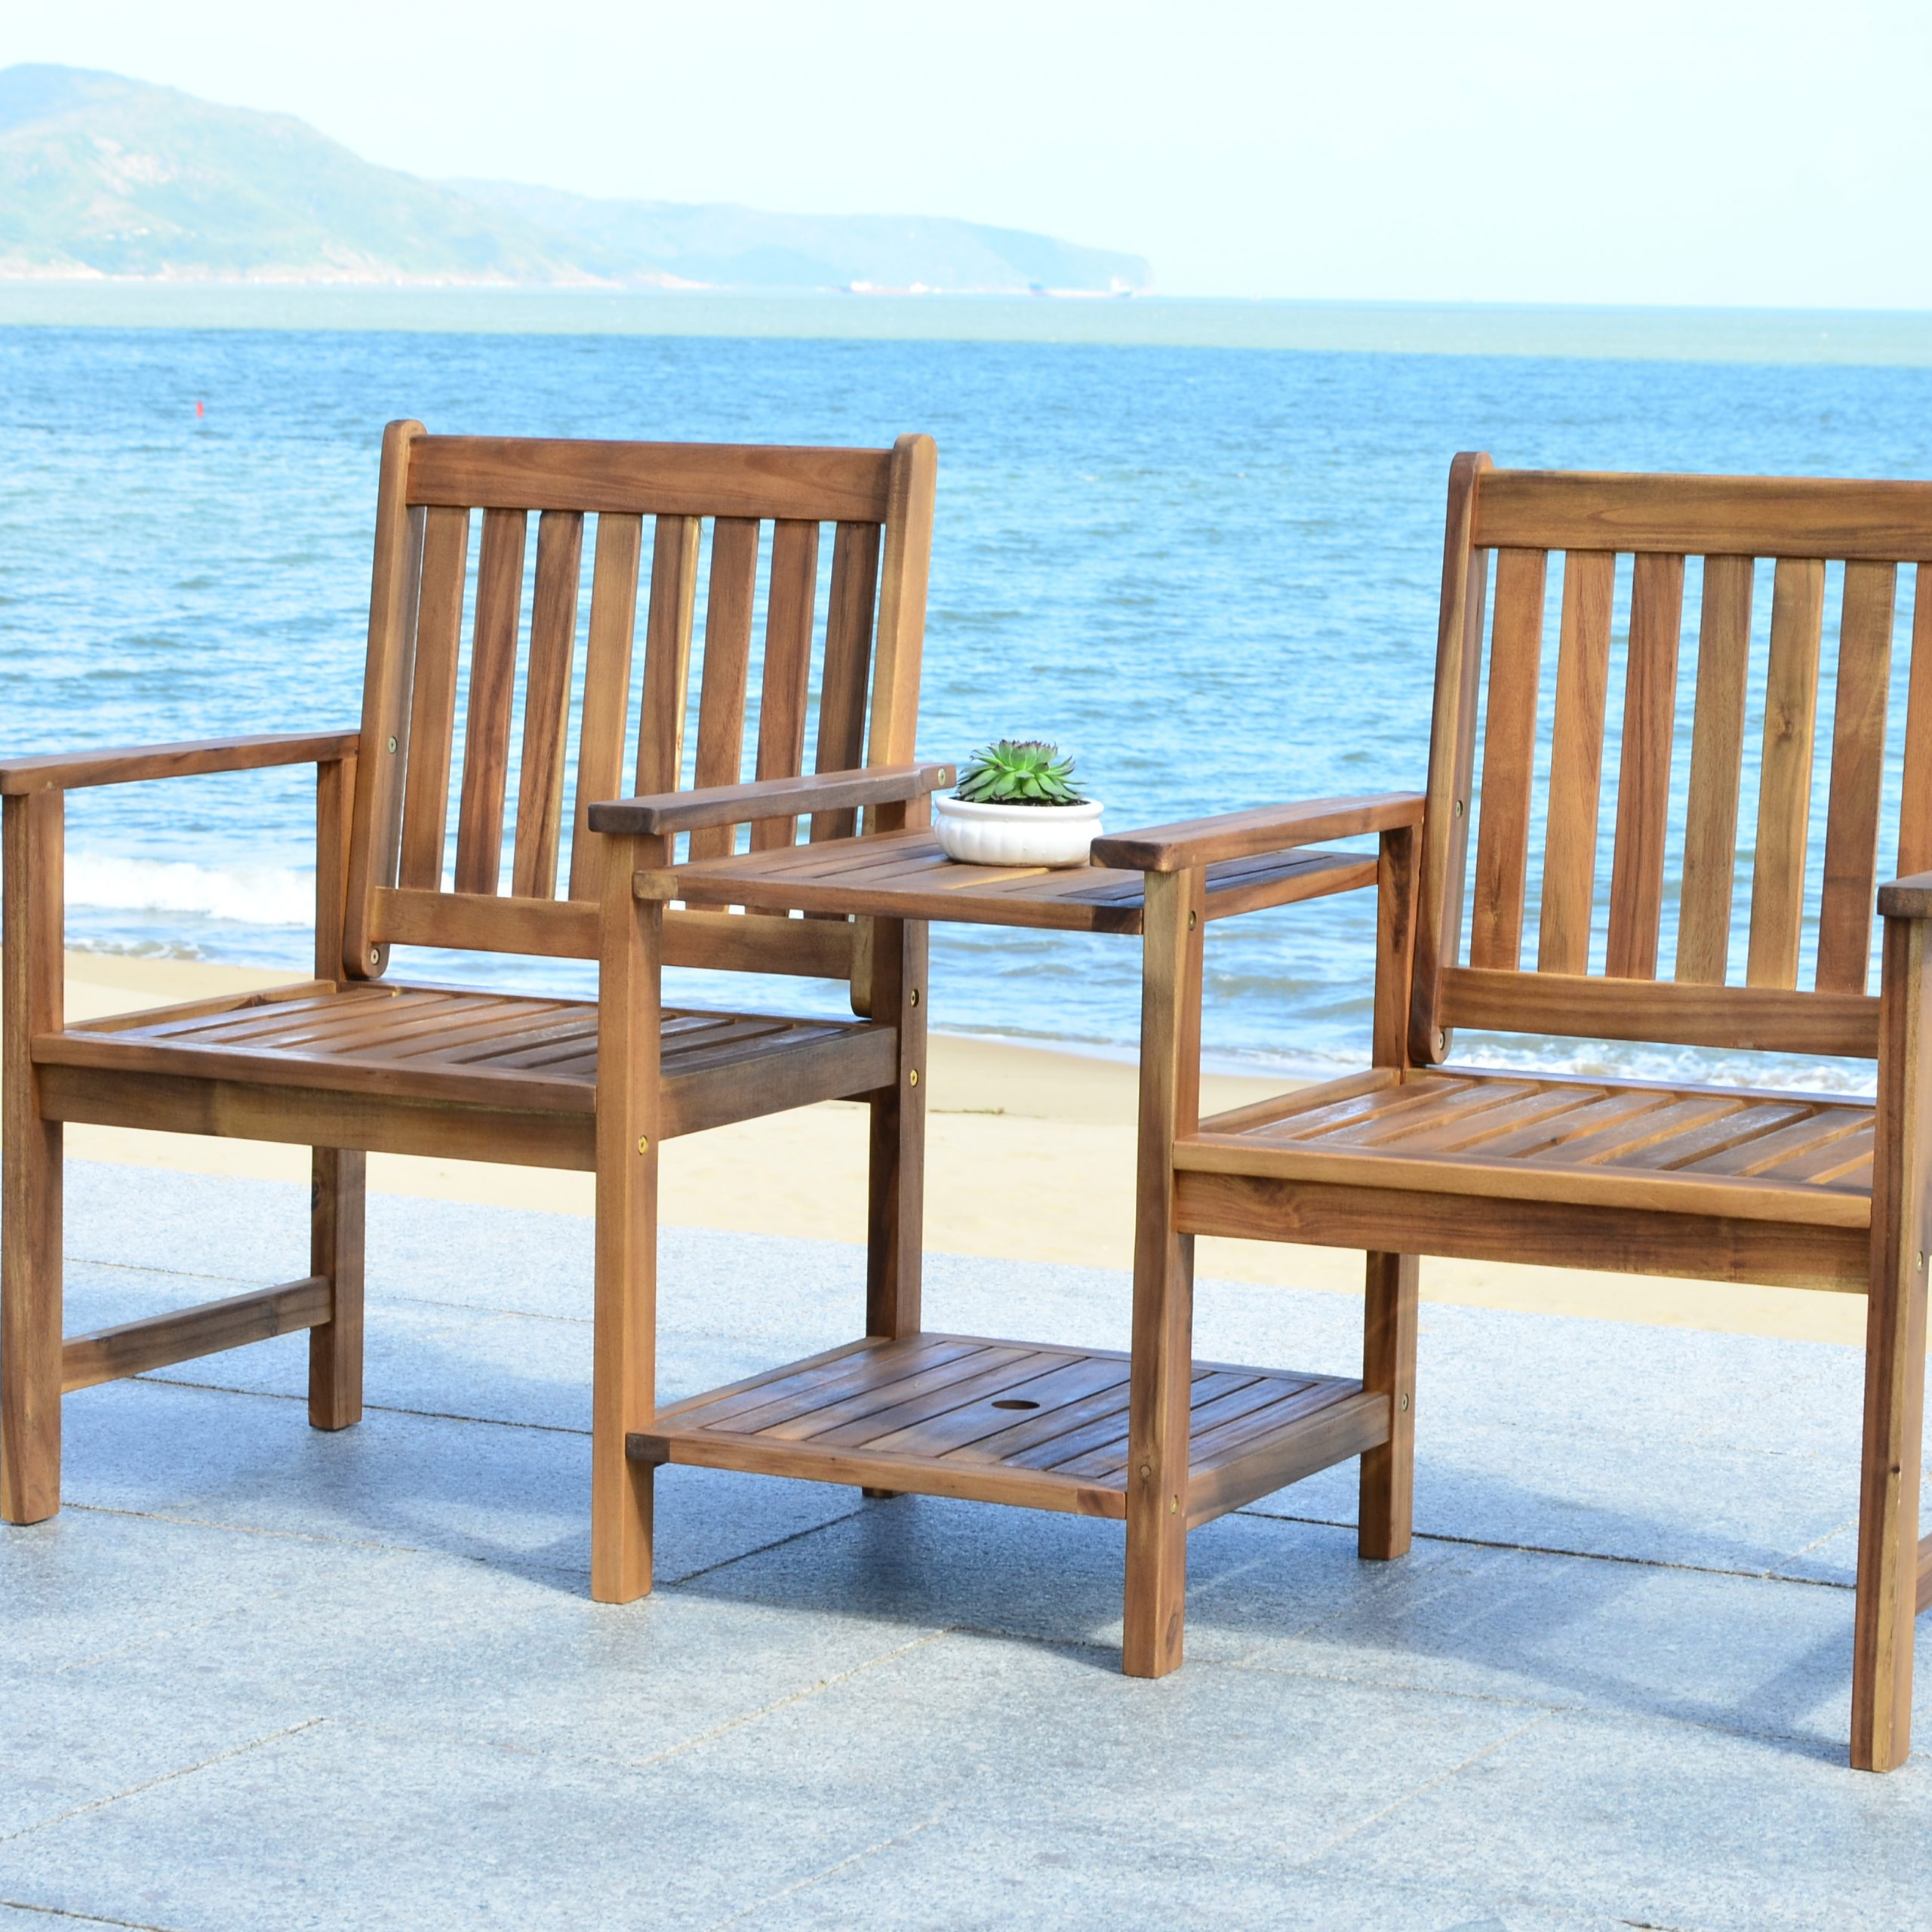 Safavieh Brea Indoor/outdoor Modern Twin Seat Bench Intended For Twin Seat Glider Benches (View 21 of 25)